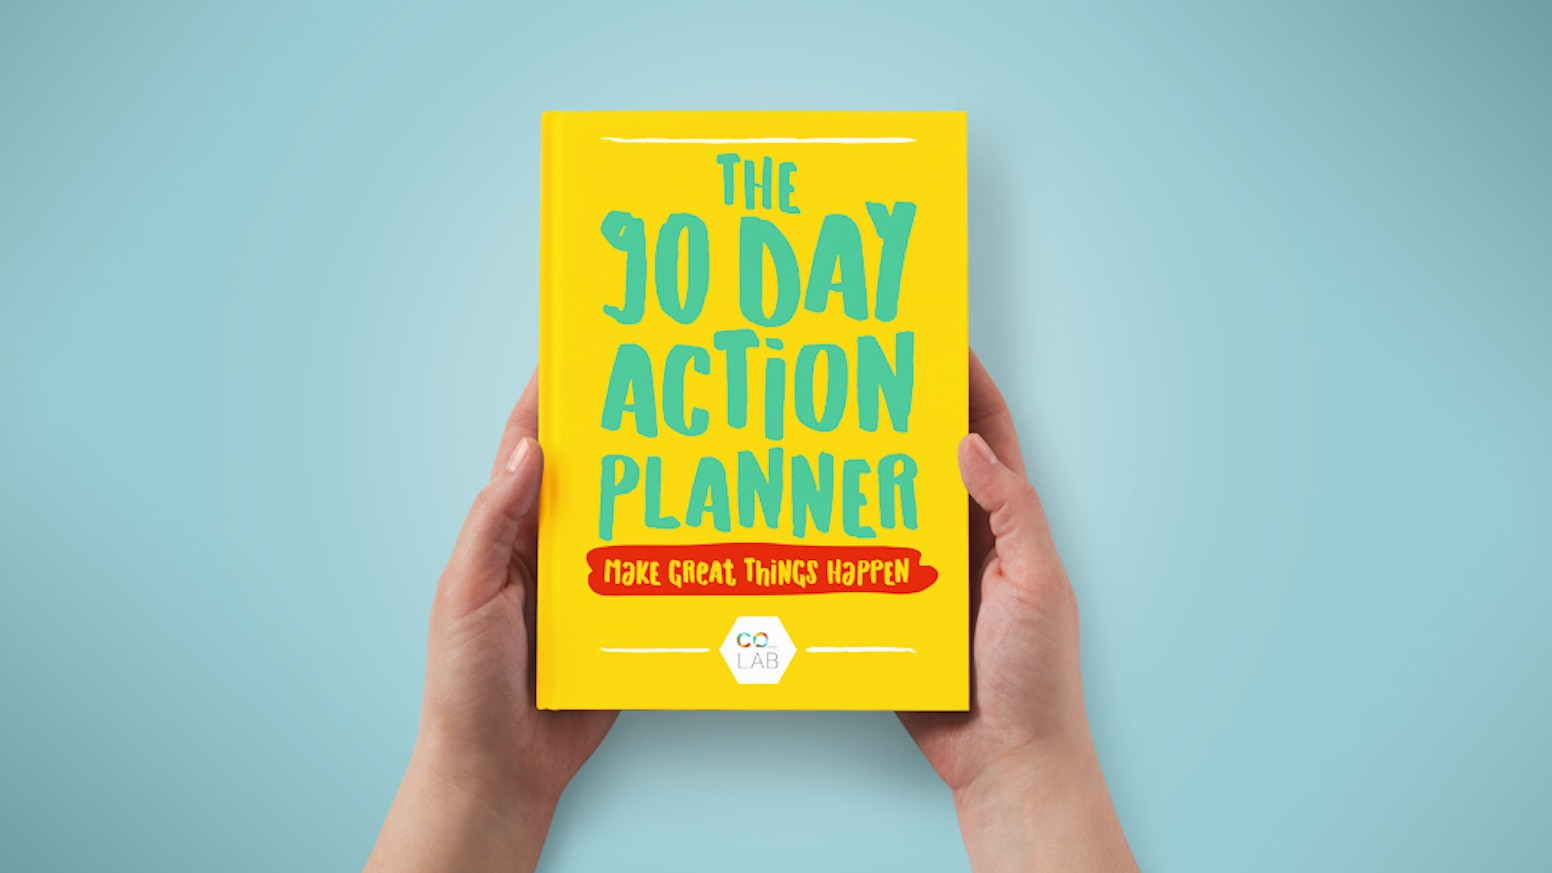 The 90 Day Action Planner: Make Great Things Happen! by Co.LAB ...